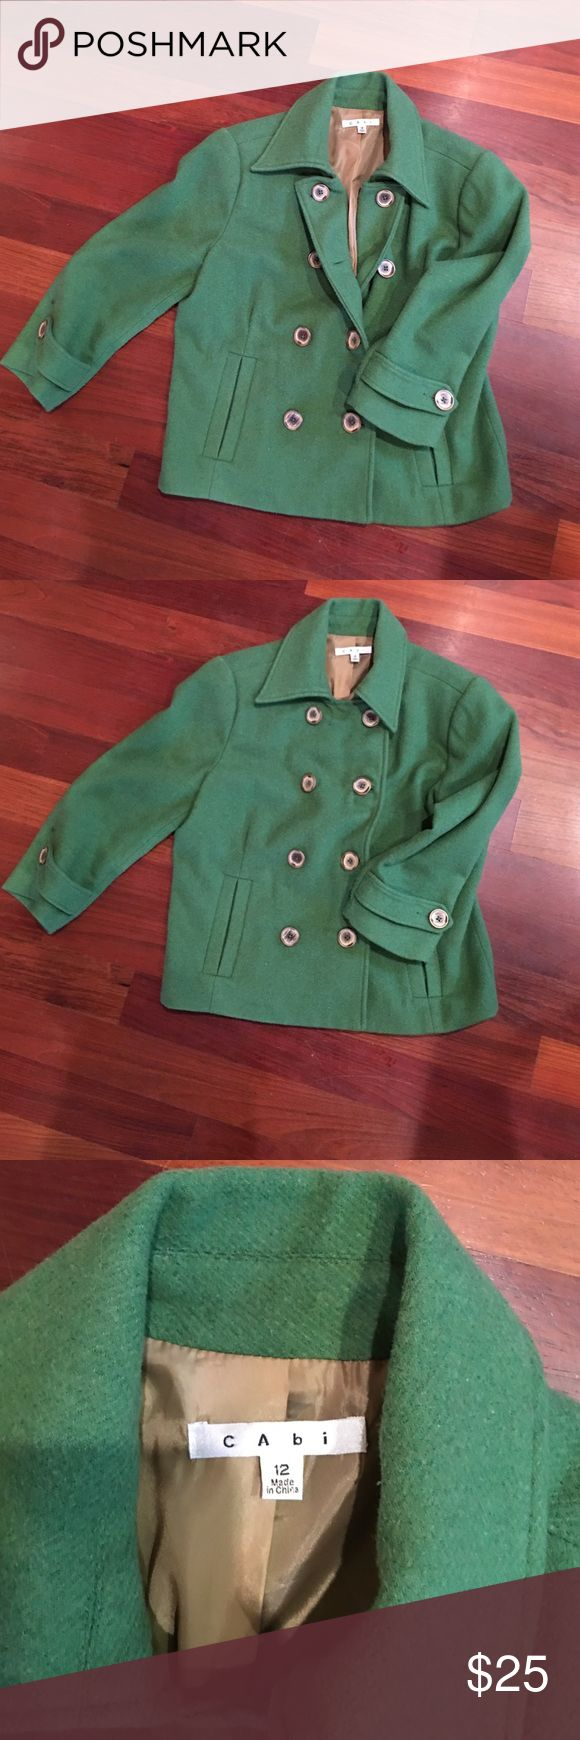 CAbi cropped blazer in Kelly green Super cute cropped blazer can we worn as an outdoor jacket or a suit blazer. Kelly green. Unique options for buttons shown in pics for different look! CAbi Jackets & Coats Blazers